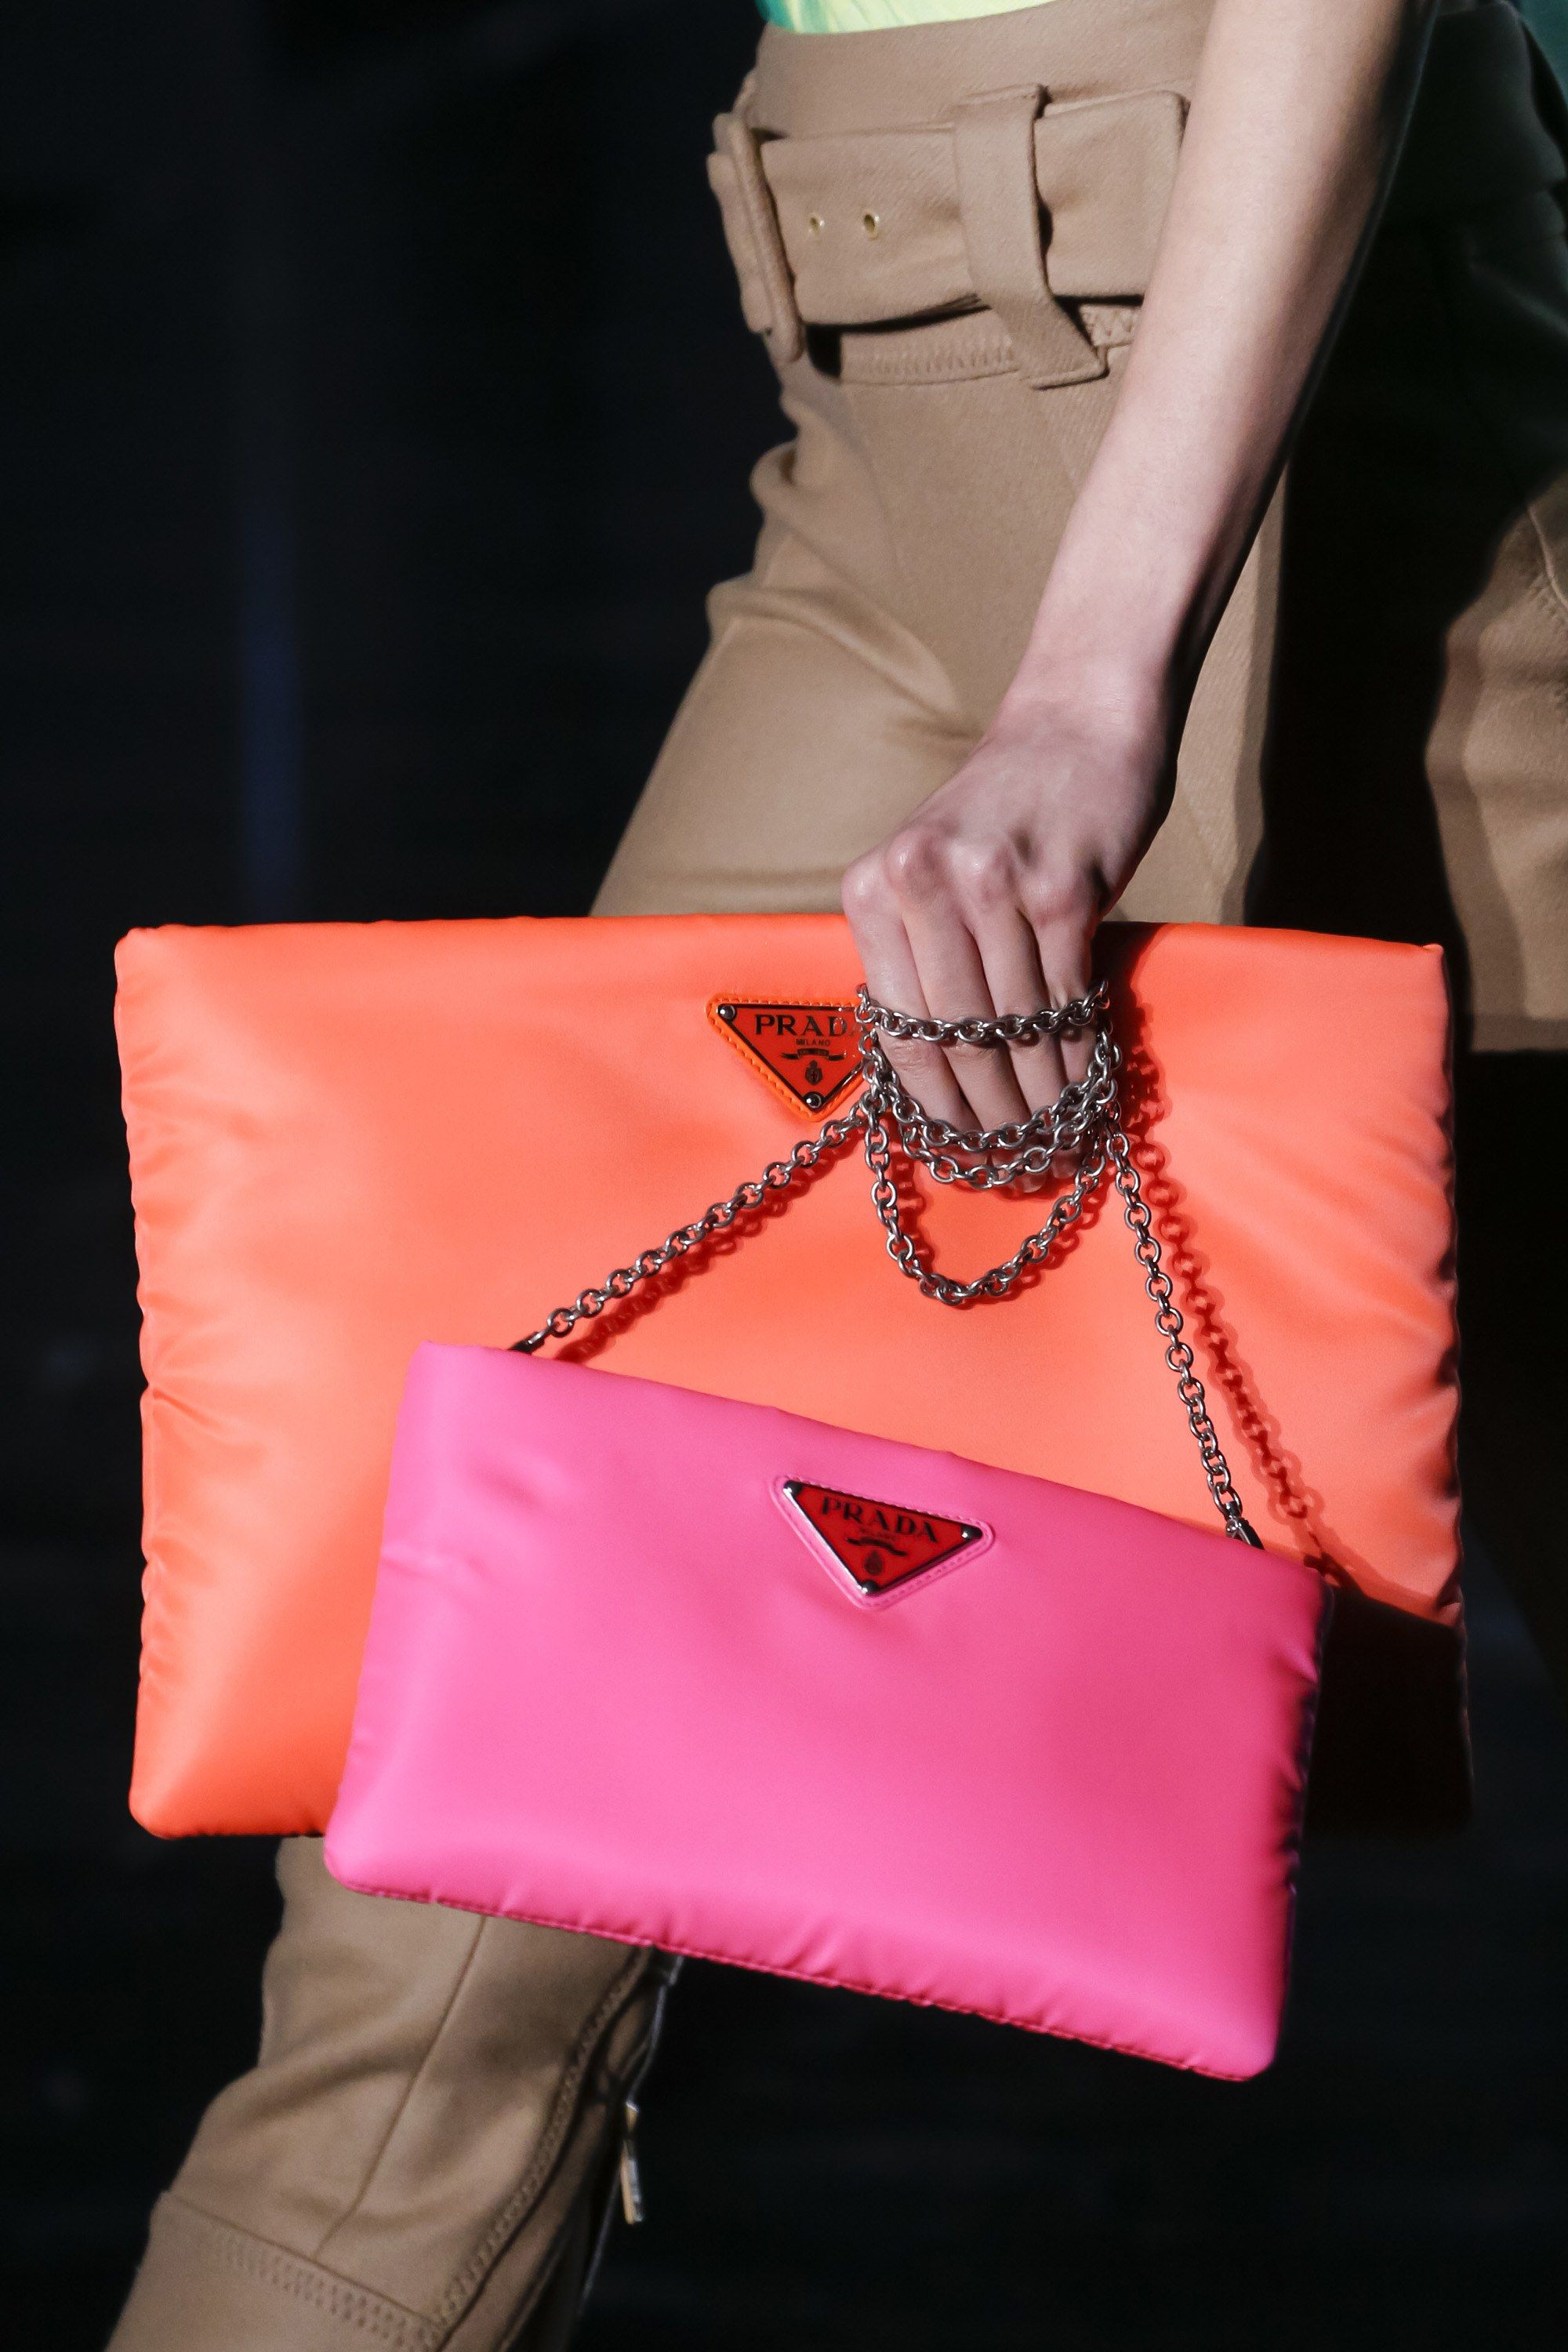 bcd12ed30cbf Brighten up any winter outfit with these colourful clutches & chain strap  bags - Prada Fall 2018 #MFW...x